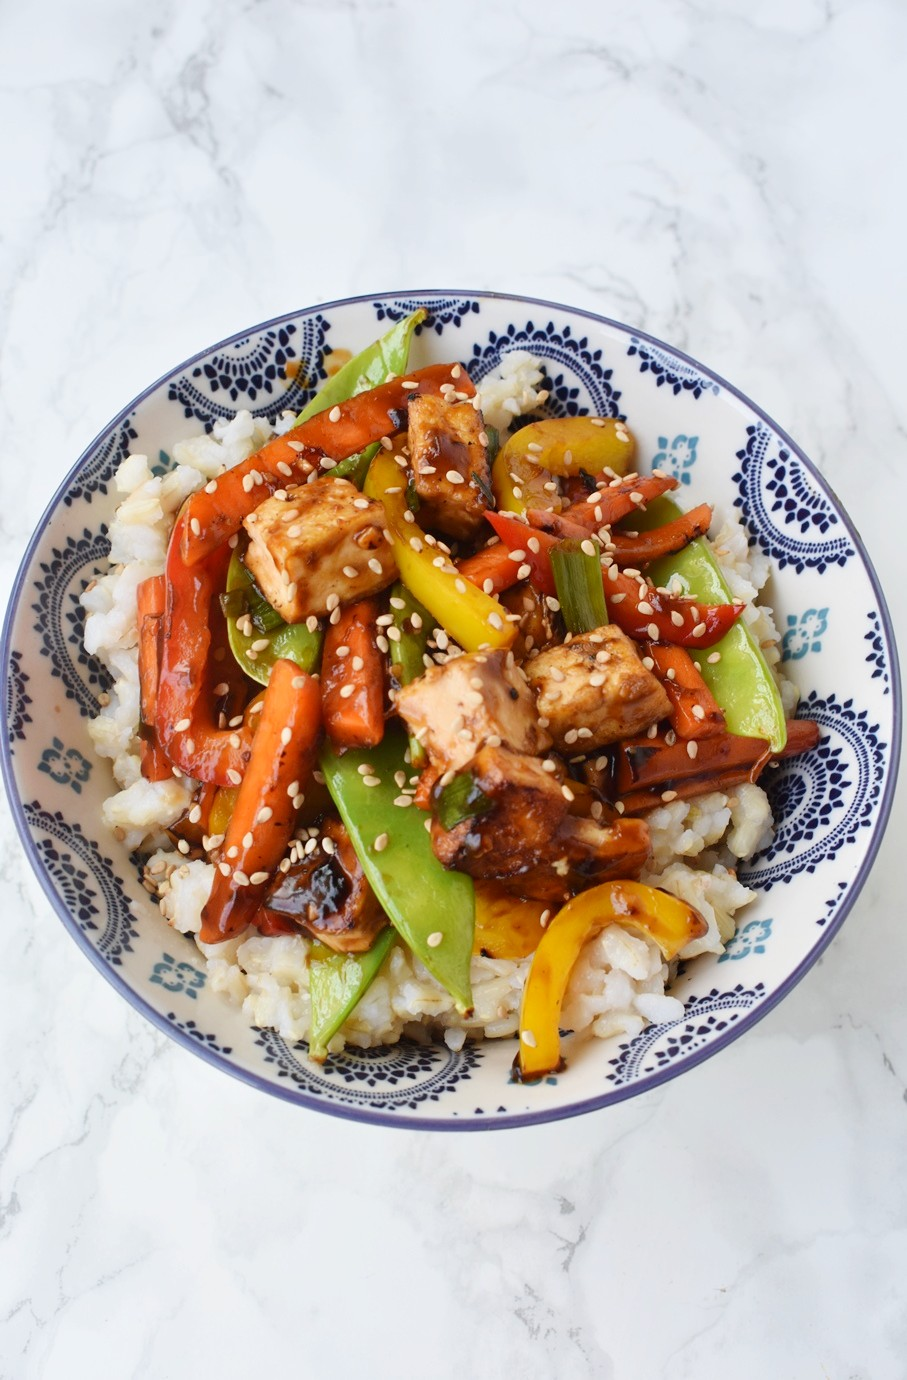 Crispy Tofu Stir-Fry is loaded with crispy flavorful tofu, bell peppers, carrots, peapods and a delicious soy garlic ginger sauce! #tofu #stirfry #rice #asian #chinese #vegetarian #veggies #healthy